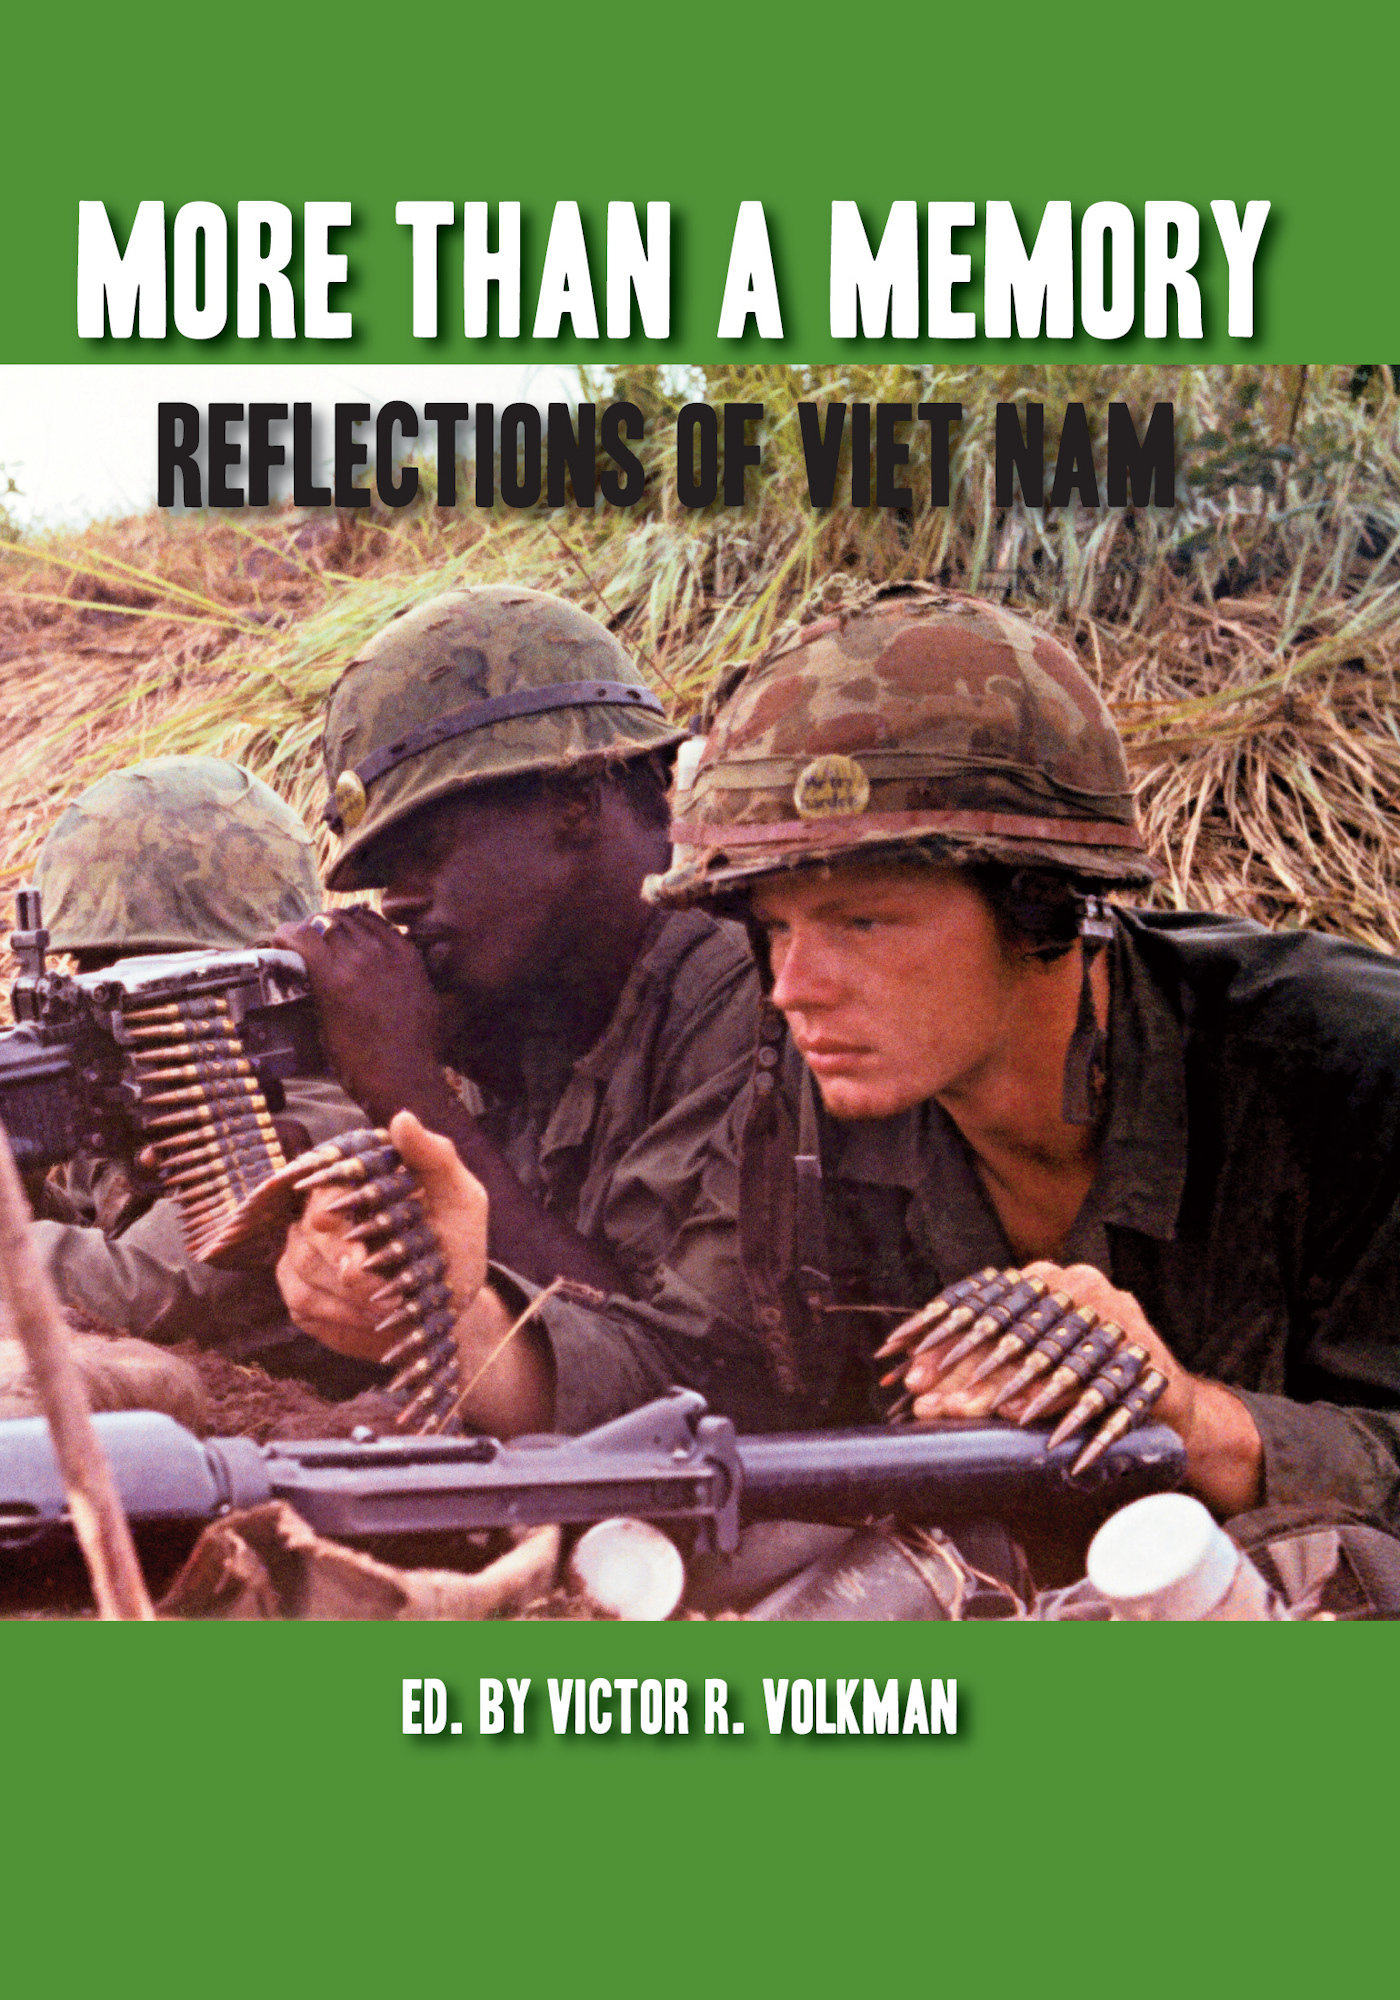 More Than A Memory: Reflections of Viet Nam 978-1-932690-64-4